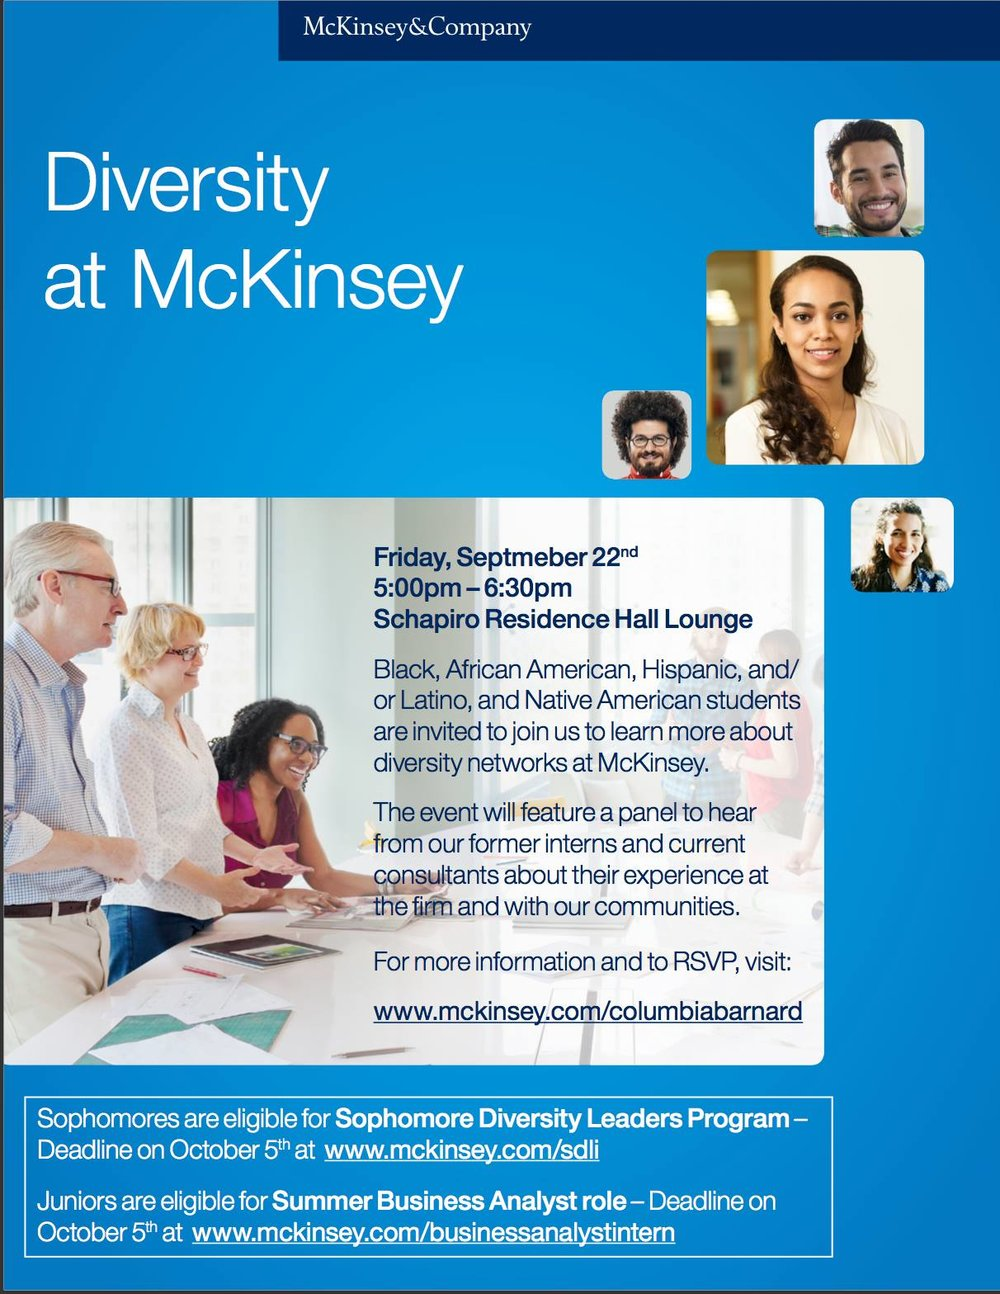 McKinsey Diversity Panel - Oct 22nd, 5:00-6:30pm, Schapiro LoungeInterested in learning about diversity at McKinsey? RSVP to attend a diversity panel to hear from former interns and current consultants! Also, get the chance to meet with current recruiters and learn more about McKinsey's summer internship program. There will be a networking session.